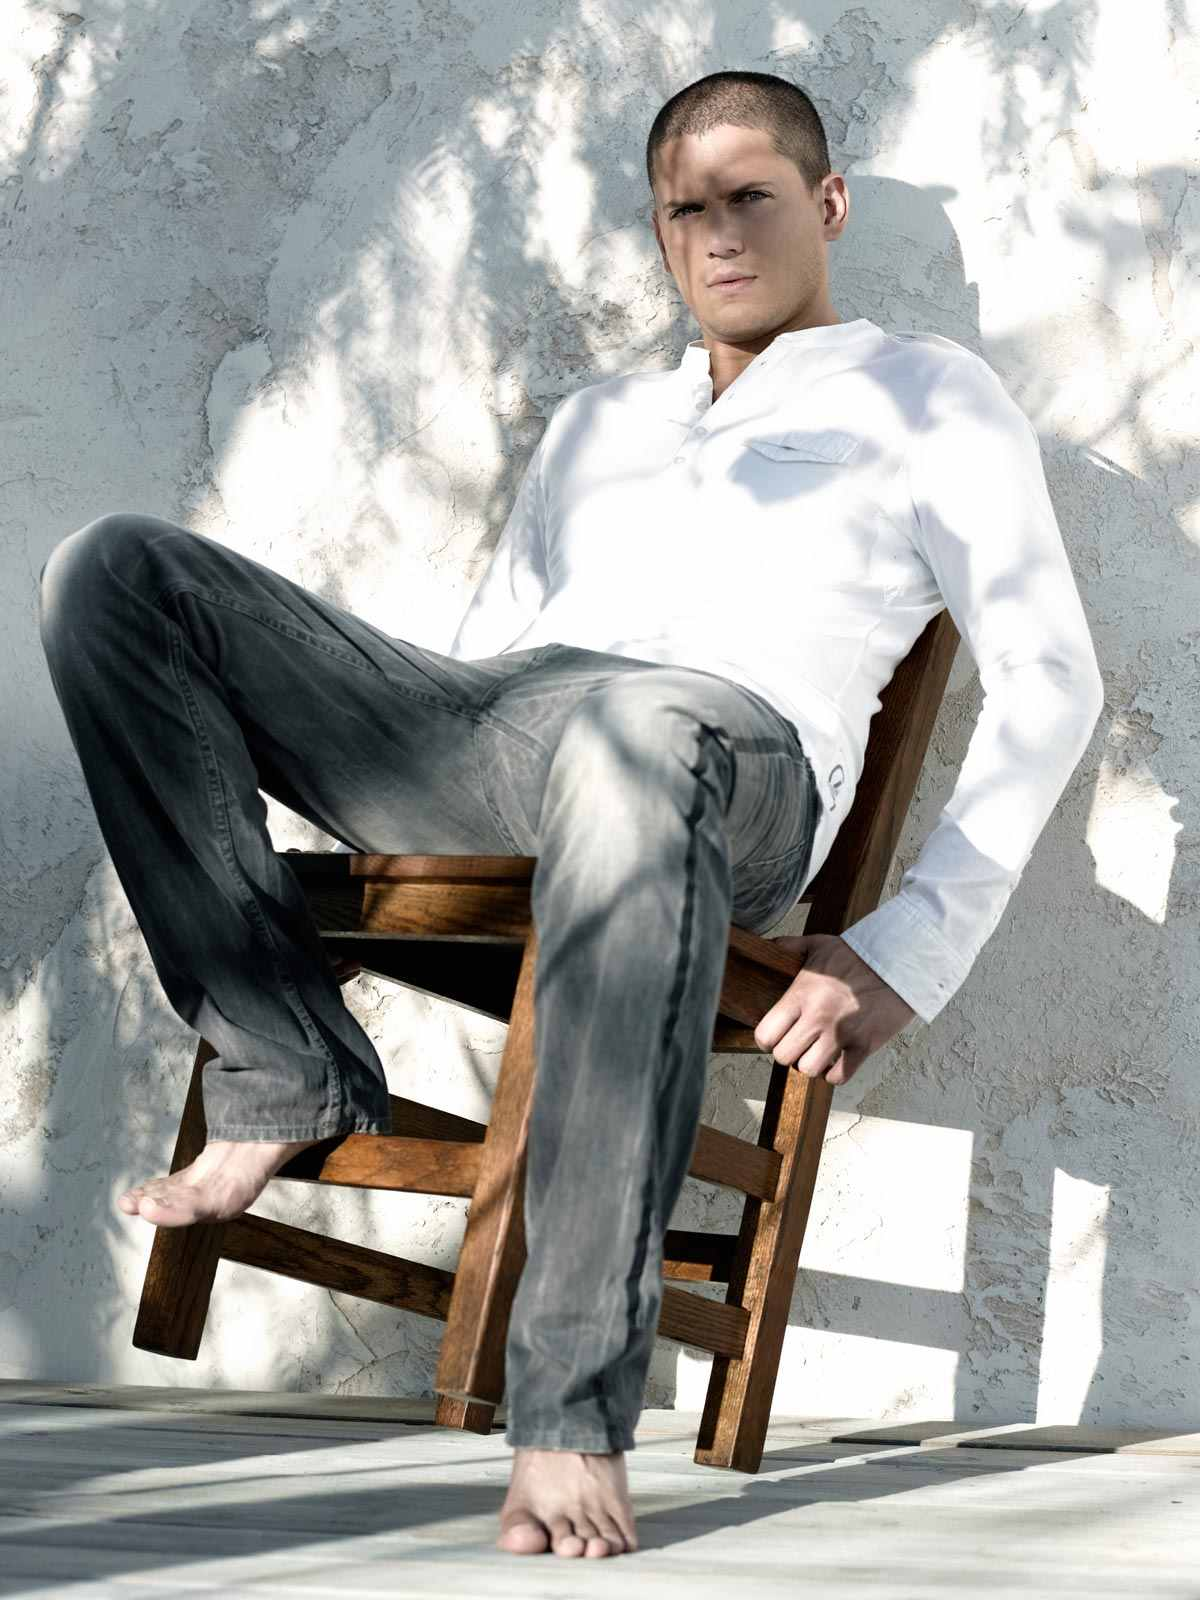 wentworth miller actor thesis college Colin campbell emeritus professor profile biography  `on understanding modern consumerism and misunderstanding the romantic ethic thesis:  wentworth college.